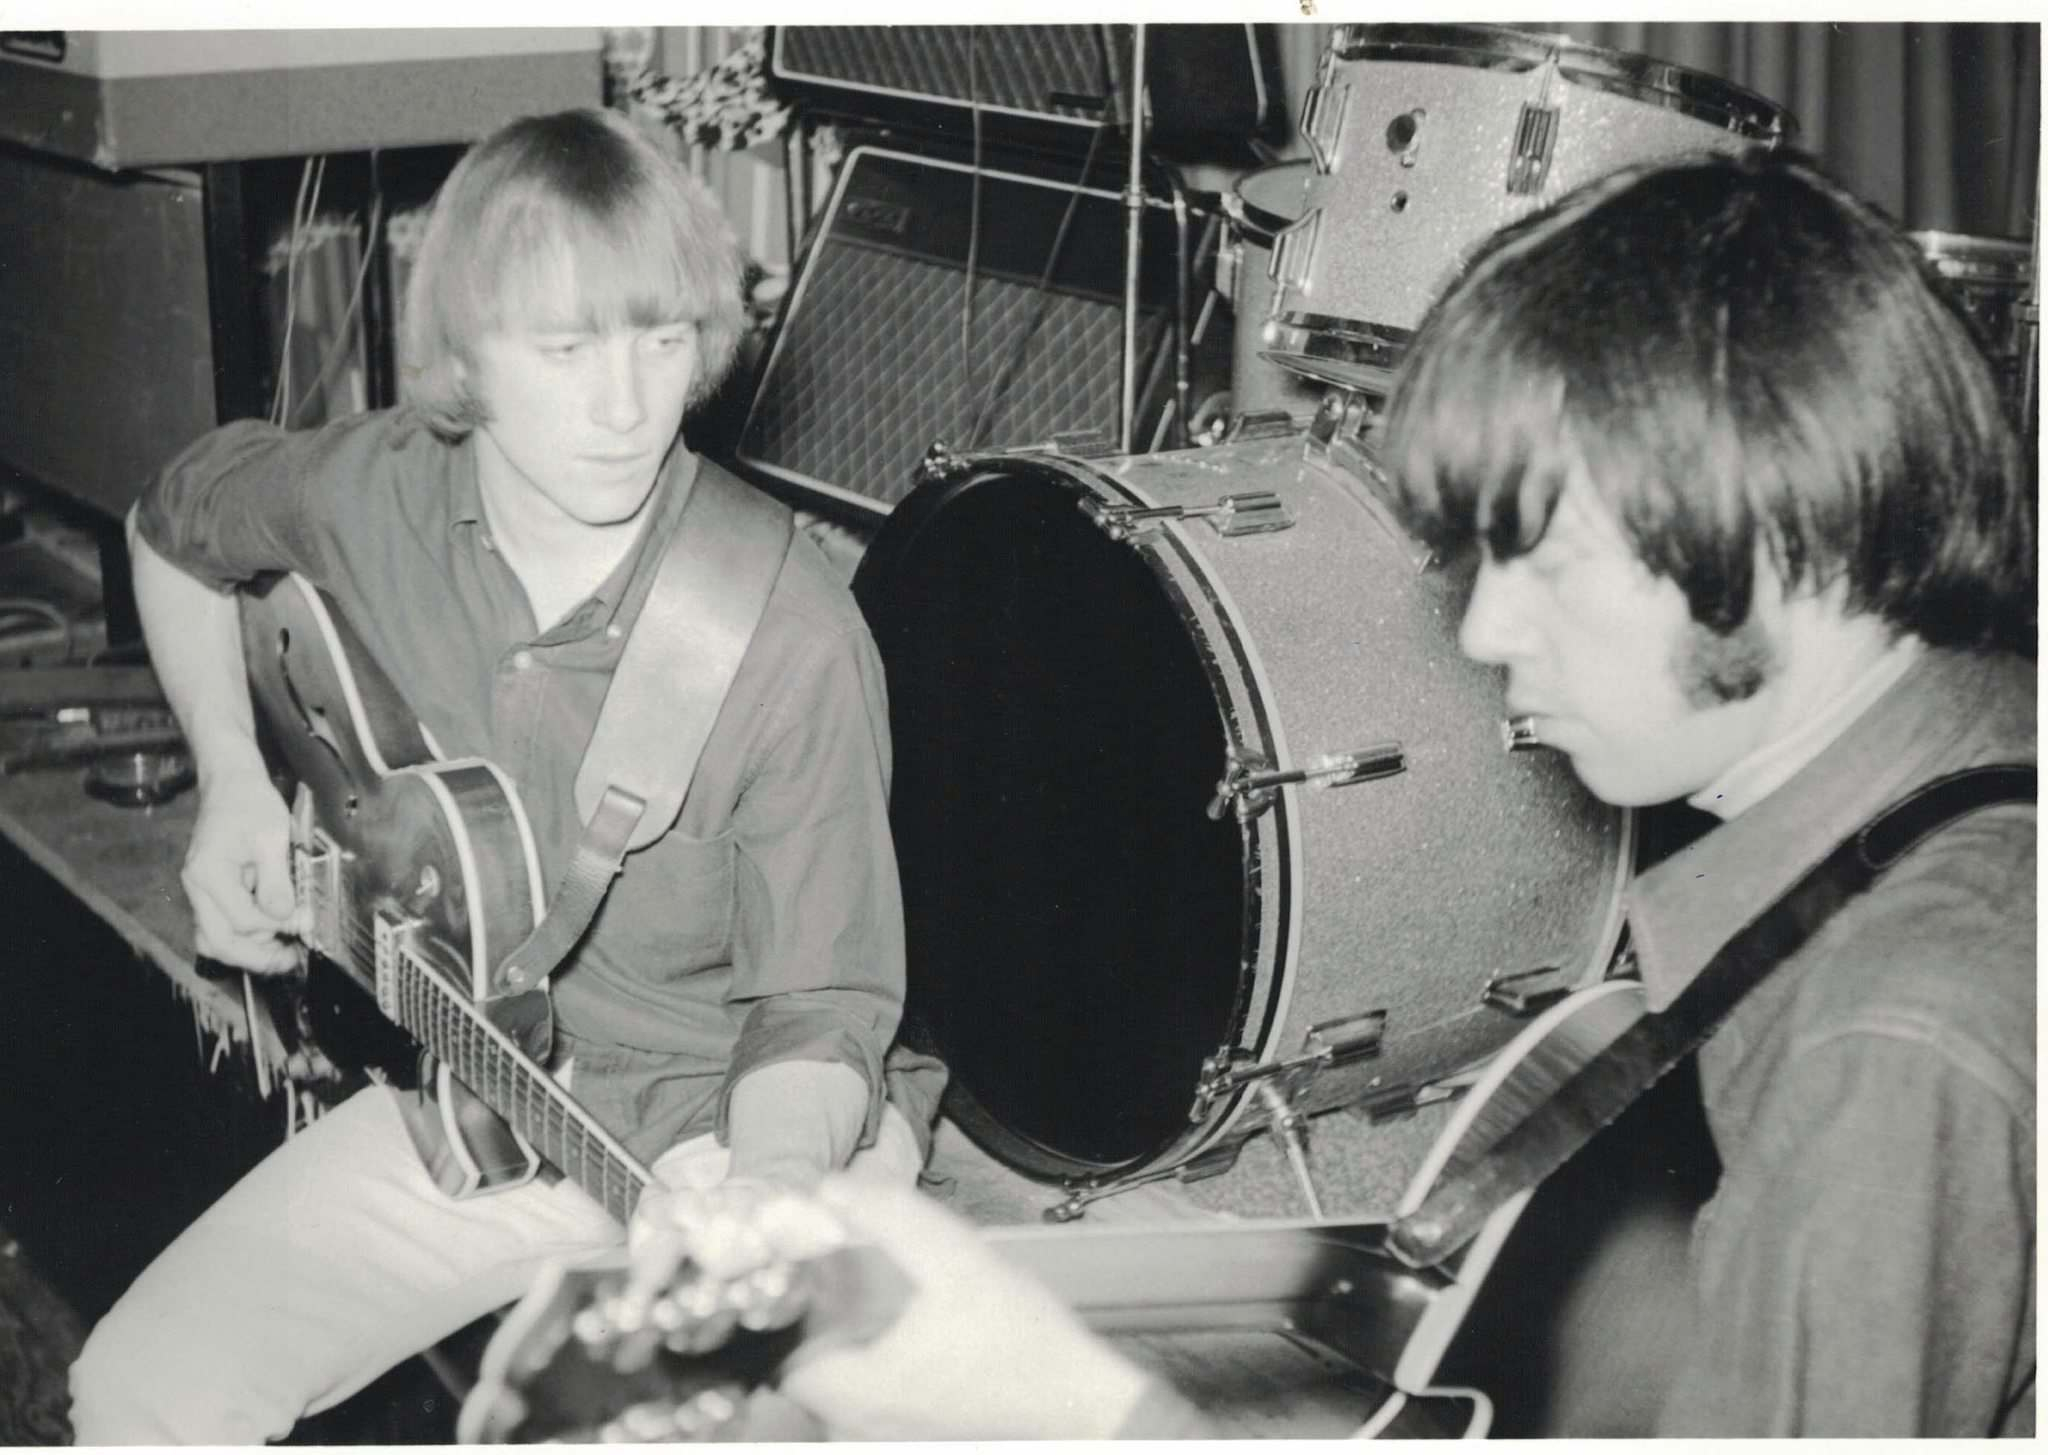 Stills and Young rehearse at the Whisky a Go Go club on borrowed guitars in May 1966.</p>